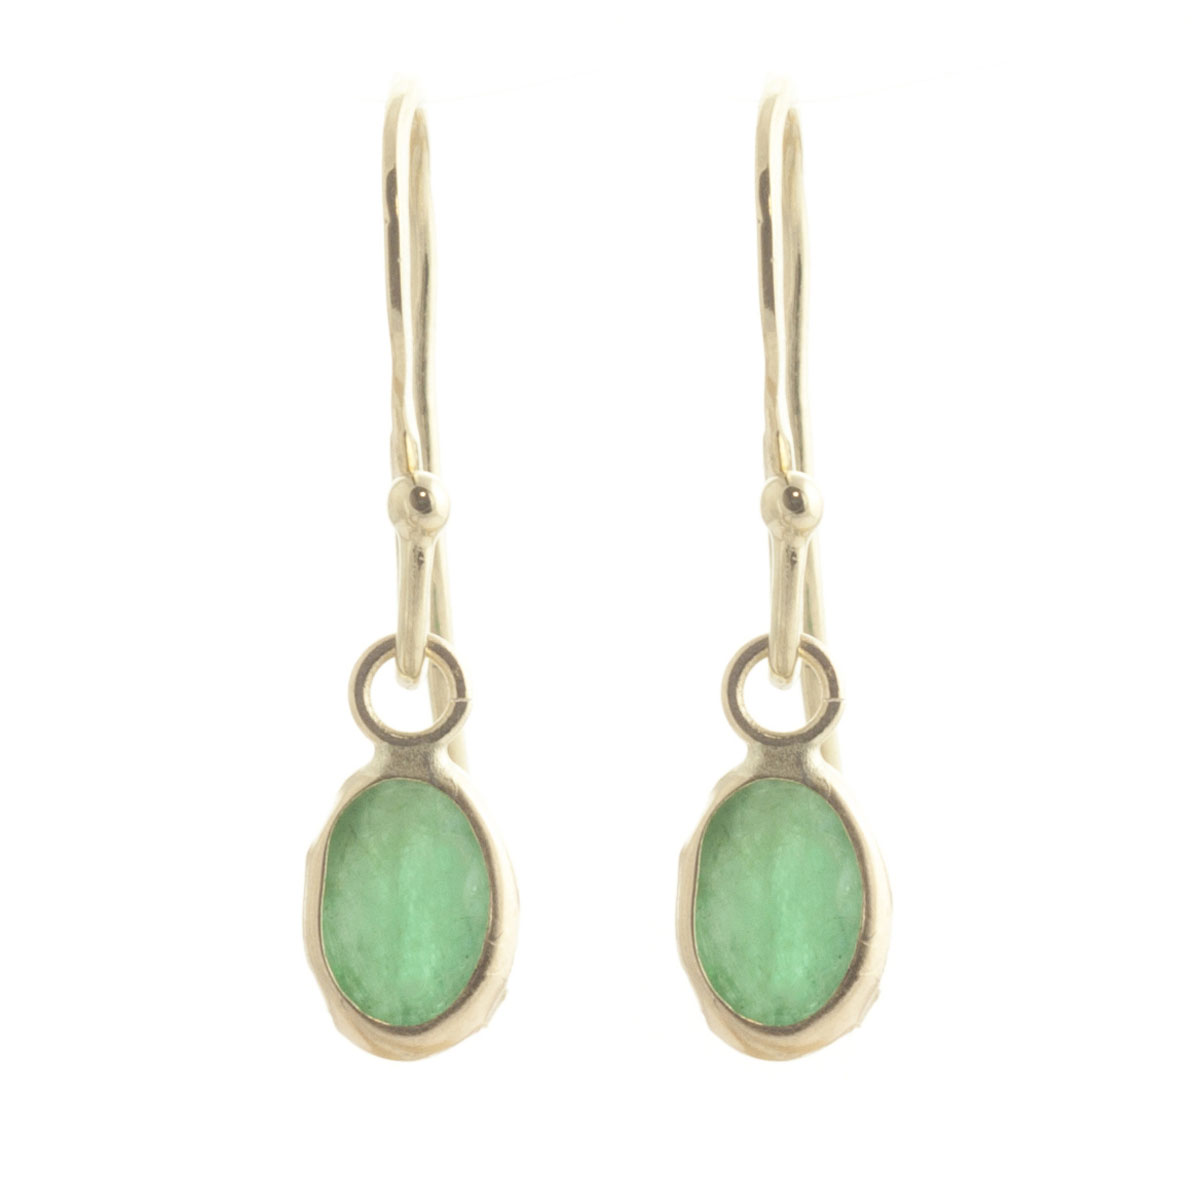 Emerald Drop Earrings 1 ctw in 9ct Gold